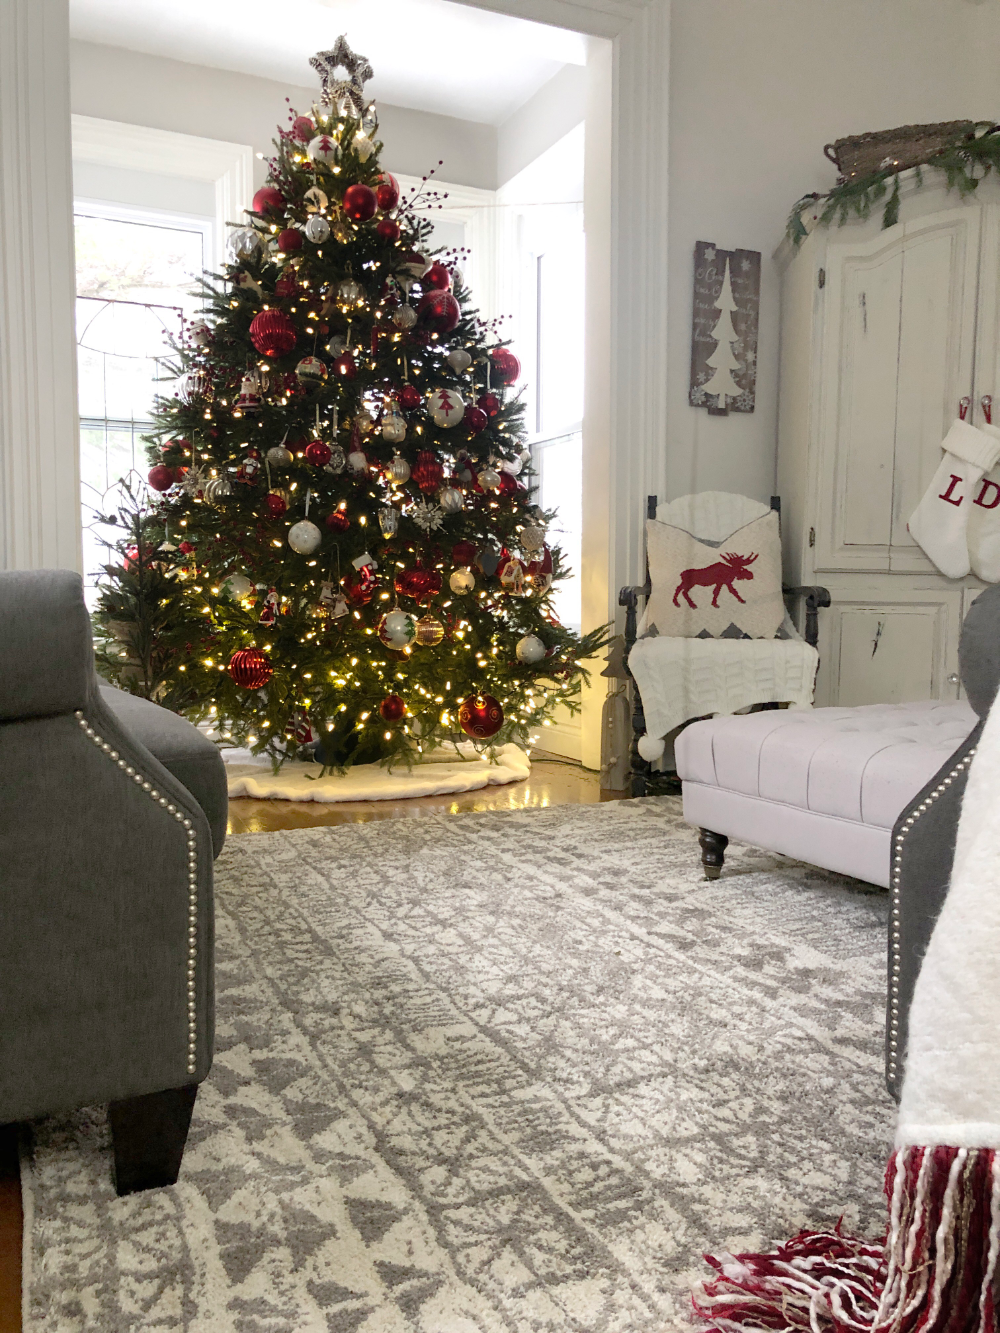 Simply Cozy Holiday Living Room Tour with Mohawk Holiday